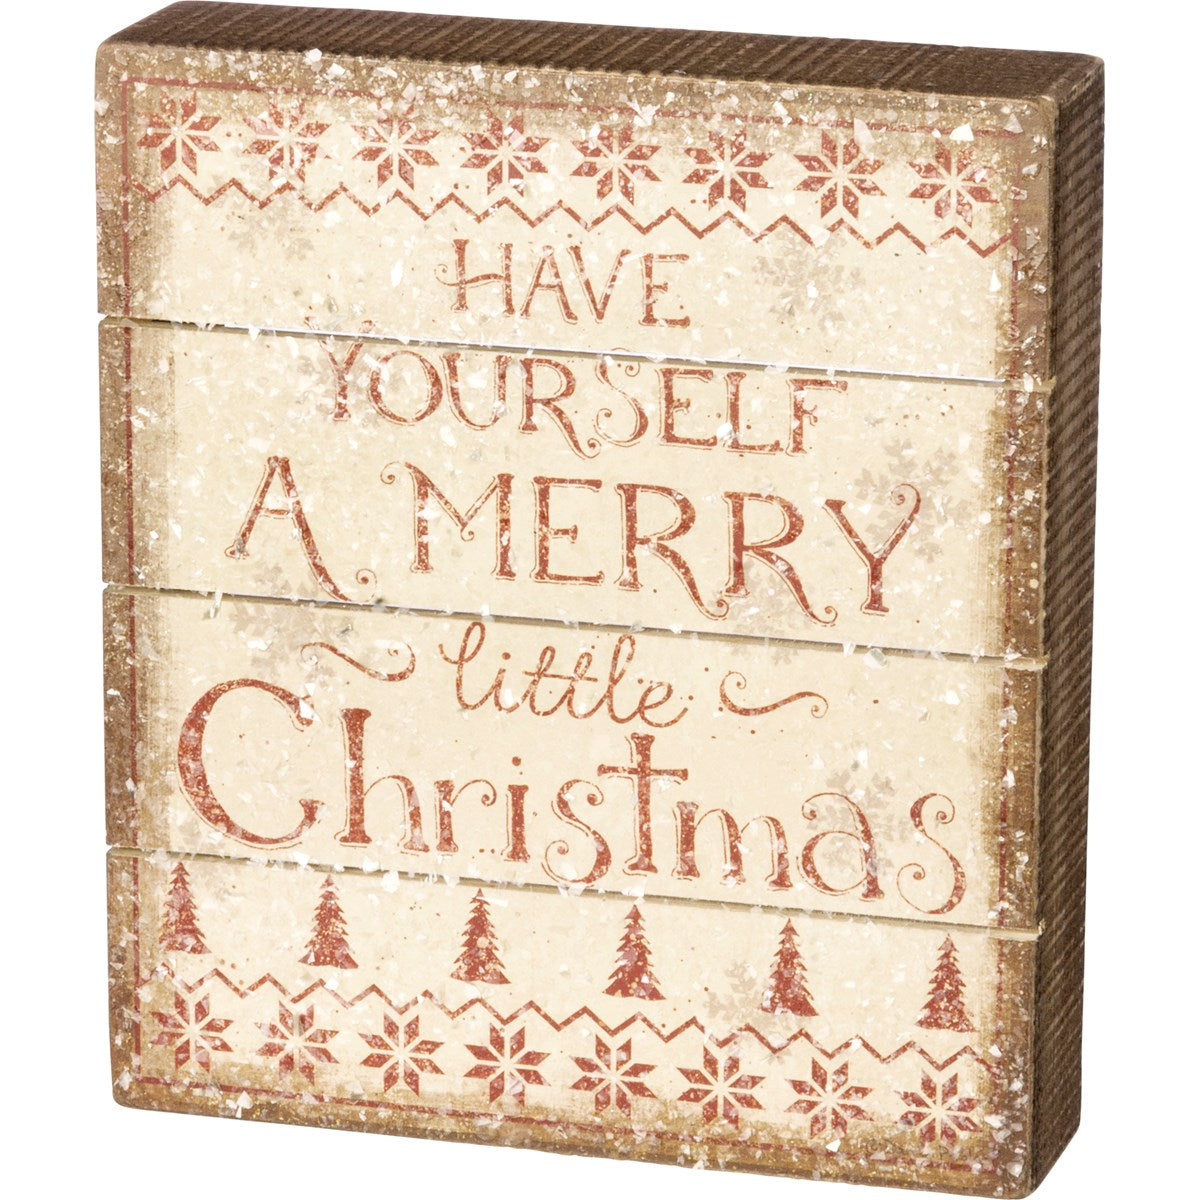 Have Yourself A Merry Little Christmas Box Sign - Vintage Crossroads